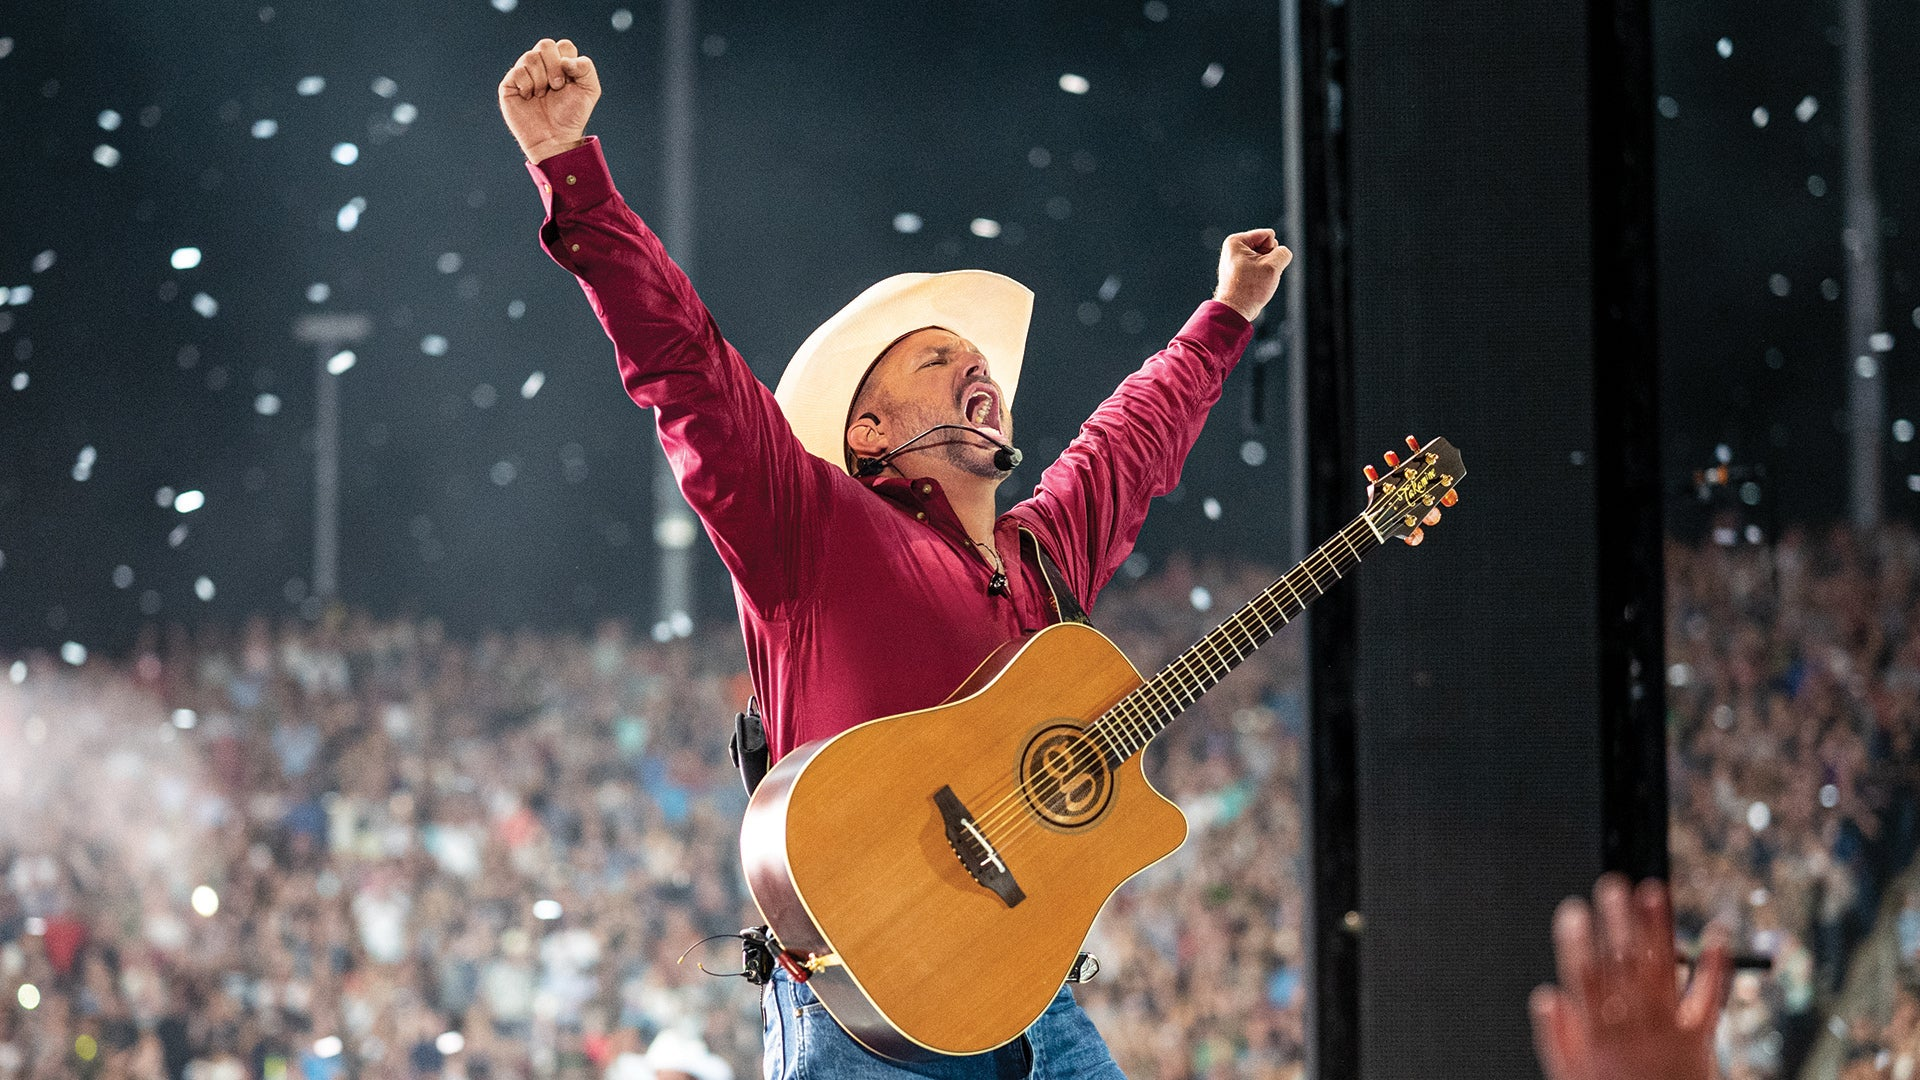 Exclusive, One Night Only Garth Brooks Concert To Air At 300 Drive-In Theaters Across North America